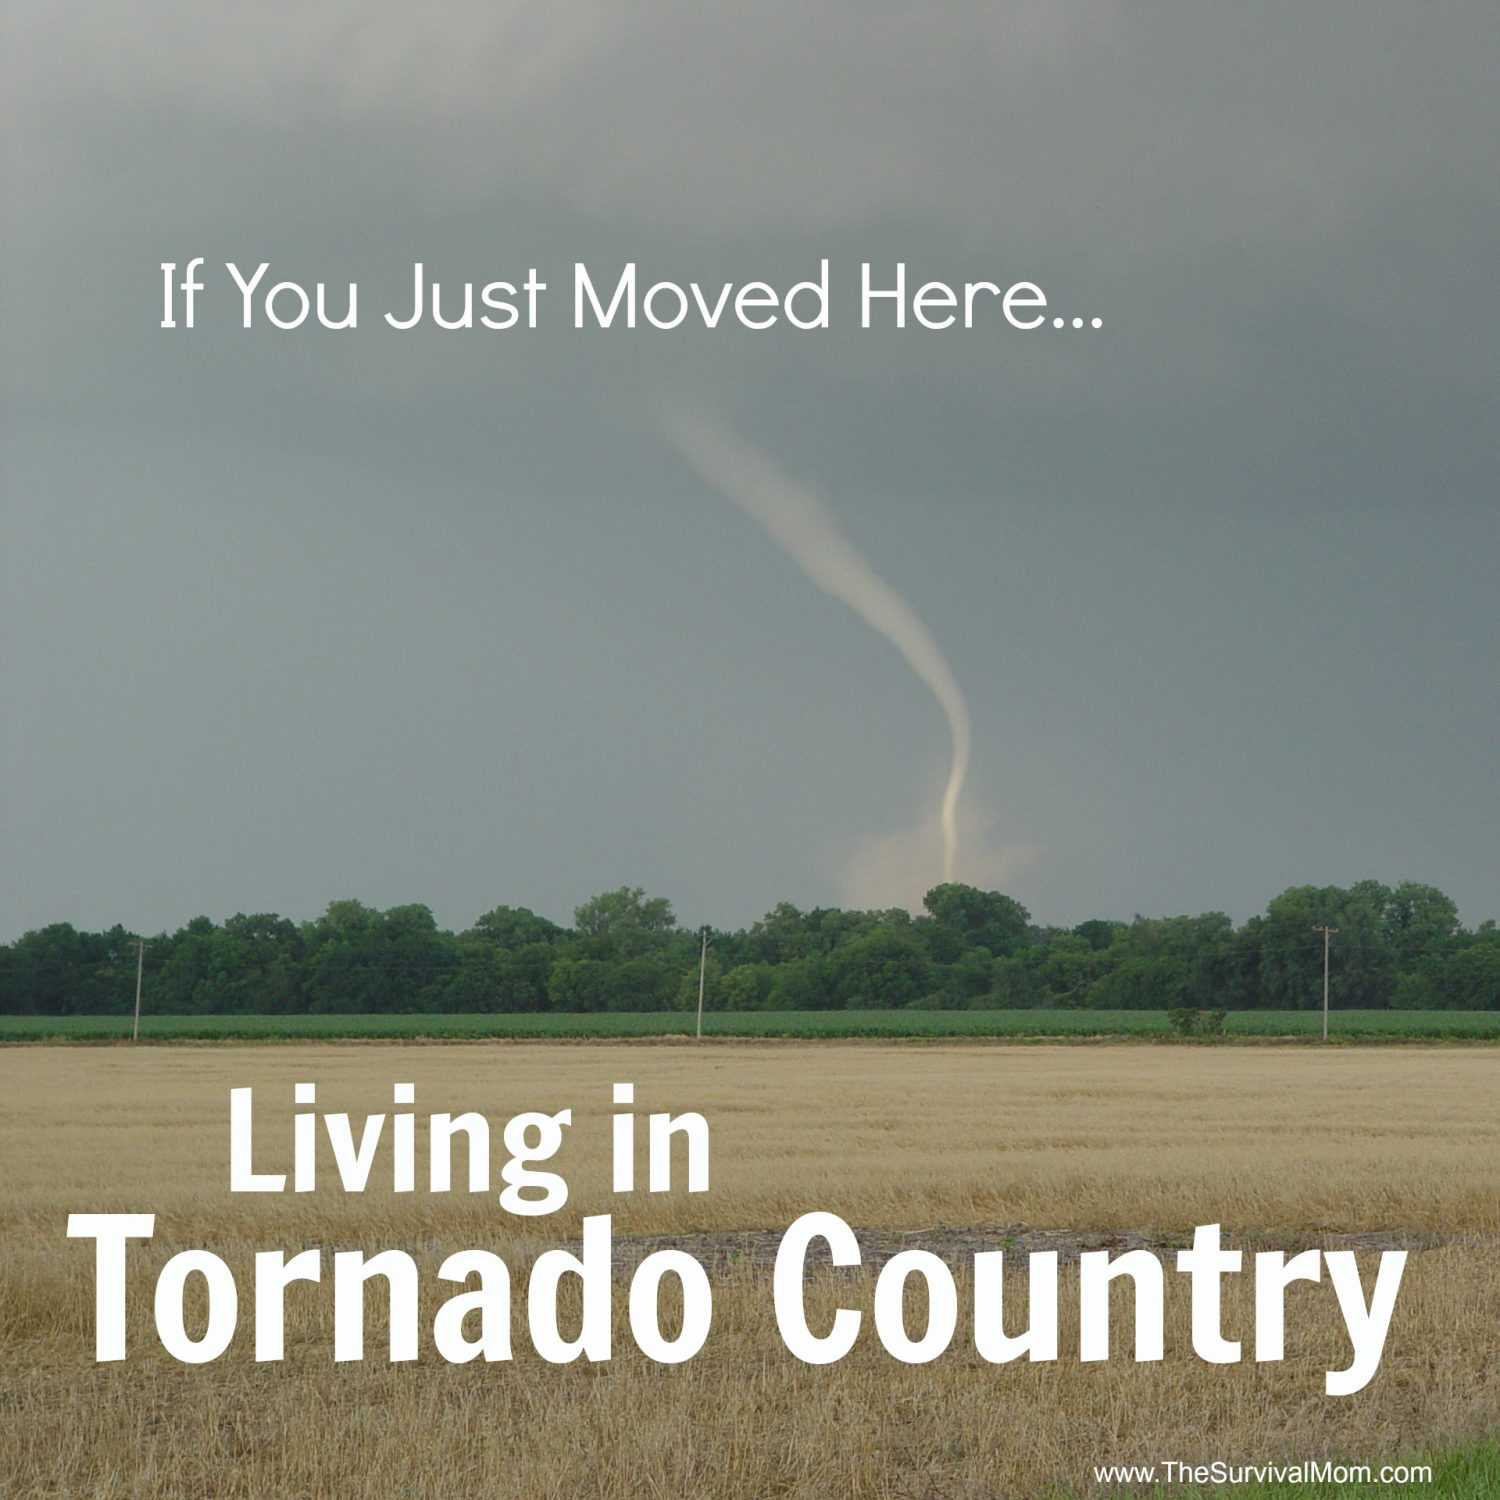 If You Just Moved Here… Living in Tornado Country